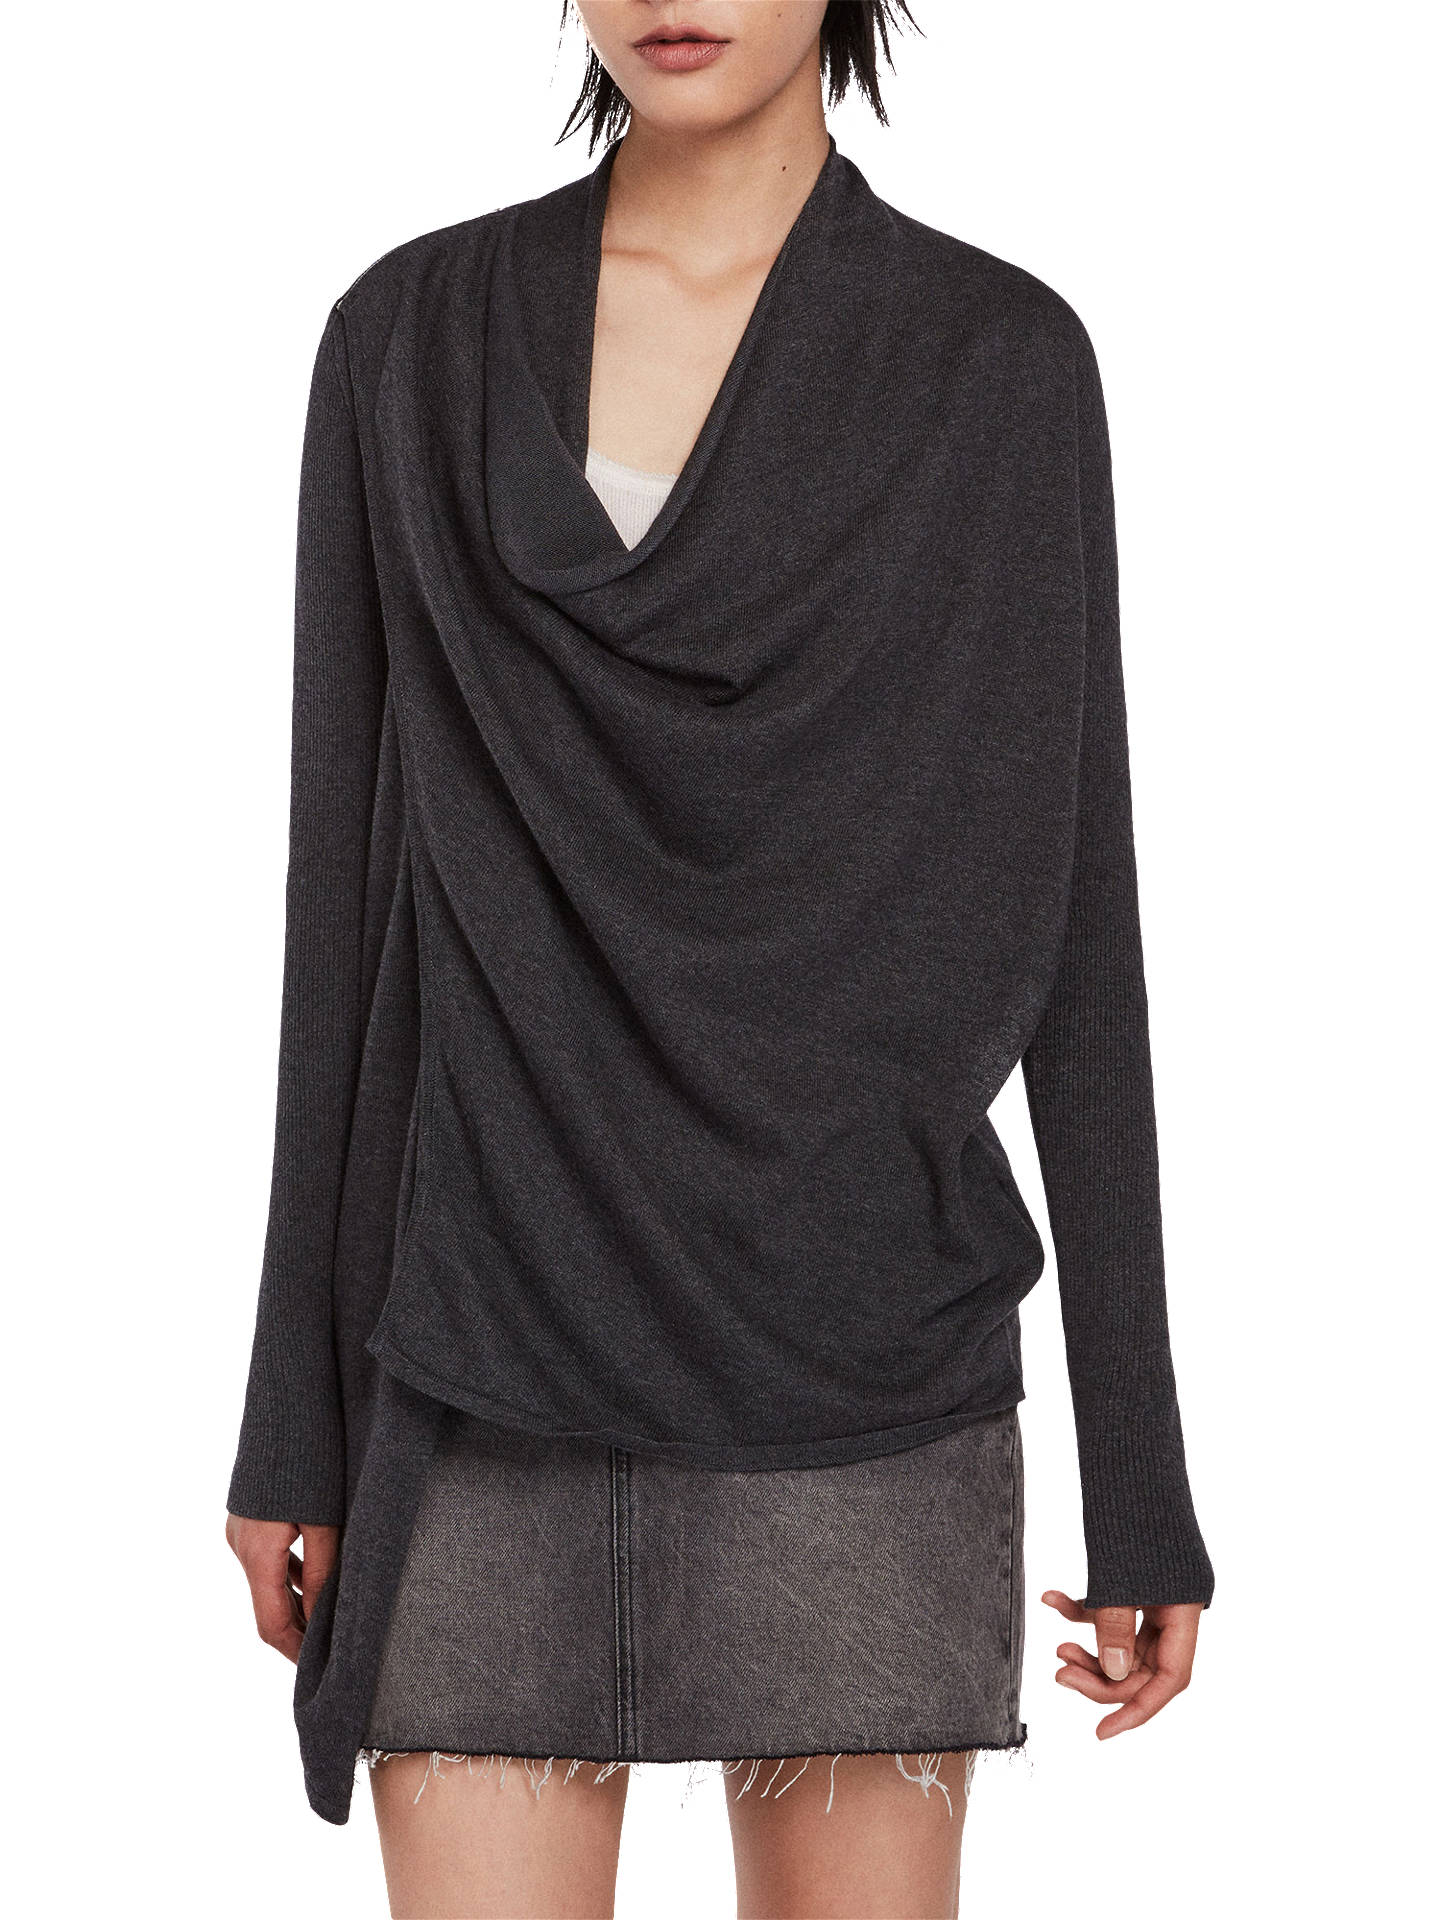 BuyAllSaints Drina Cardigan, Charcoal Grey, L Online at johnlewis.com